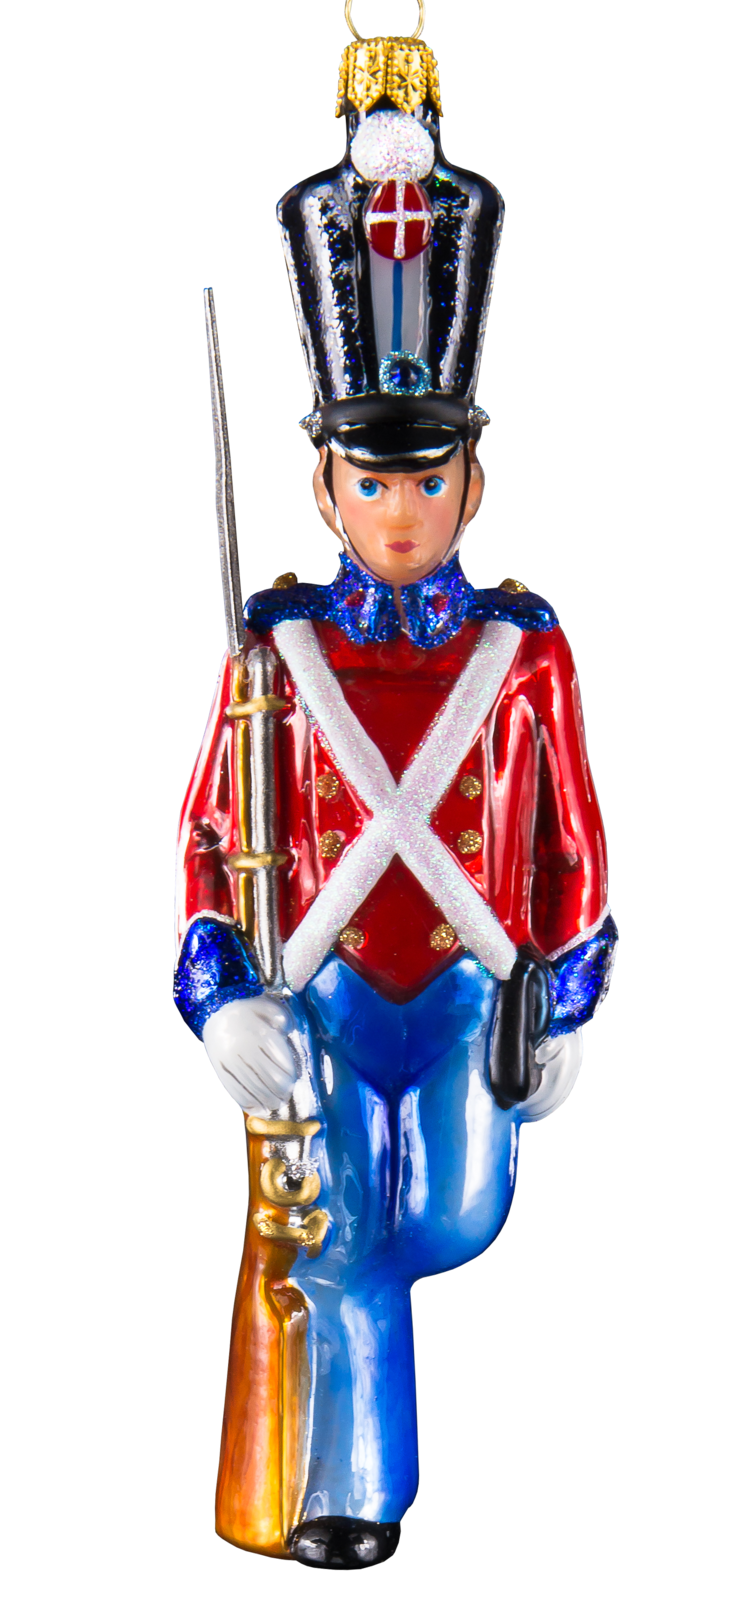 The Steadfast Tin Soldier Stands Alone - Mysteria Christmas Ornaments